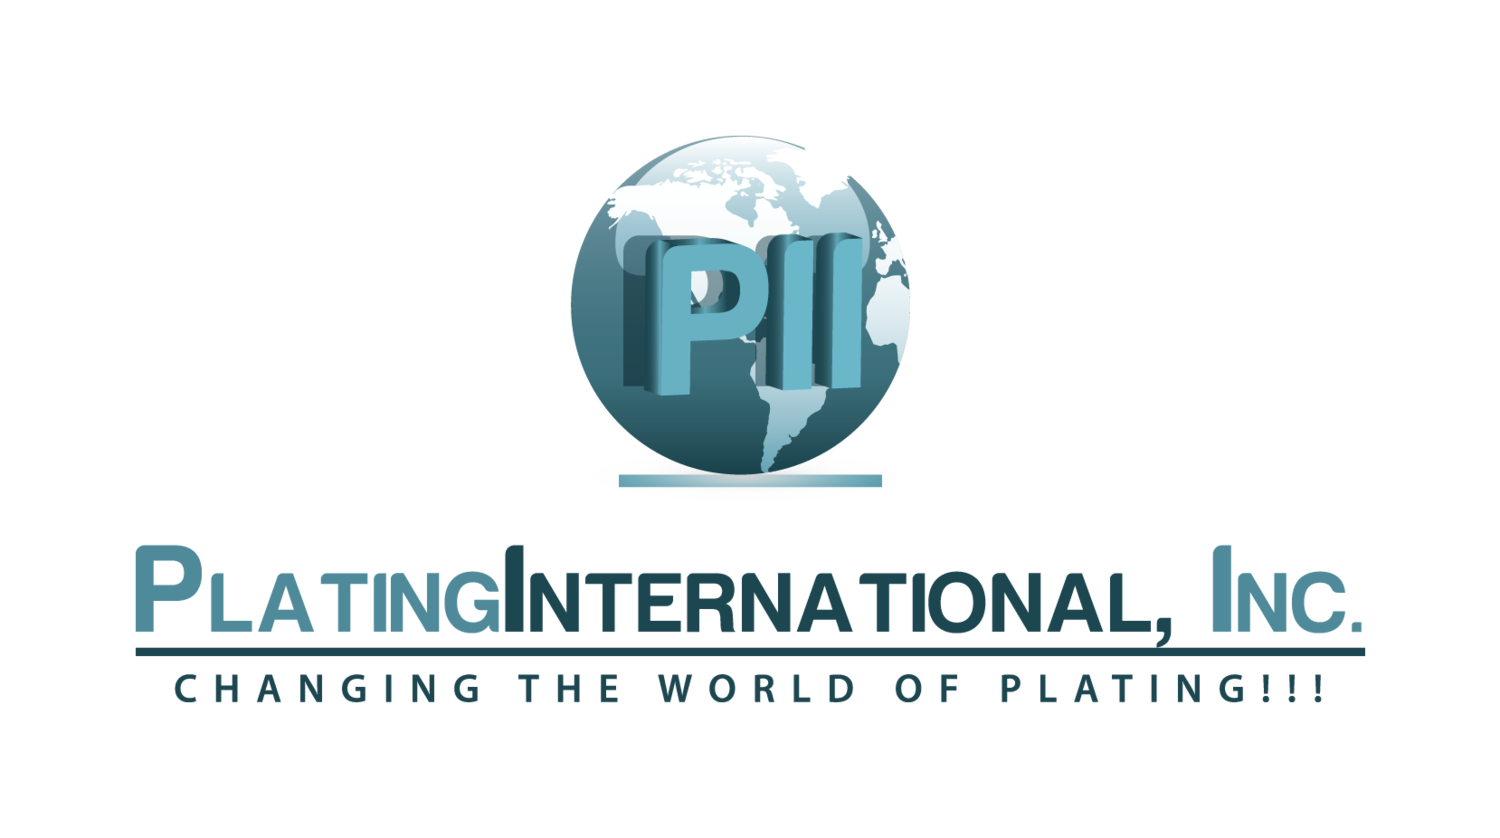 Plating International, Inc.